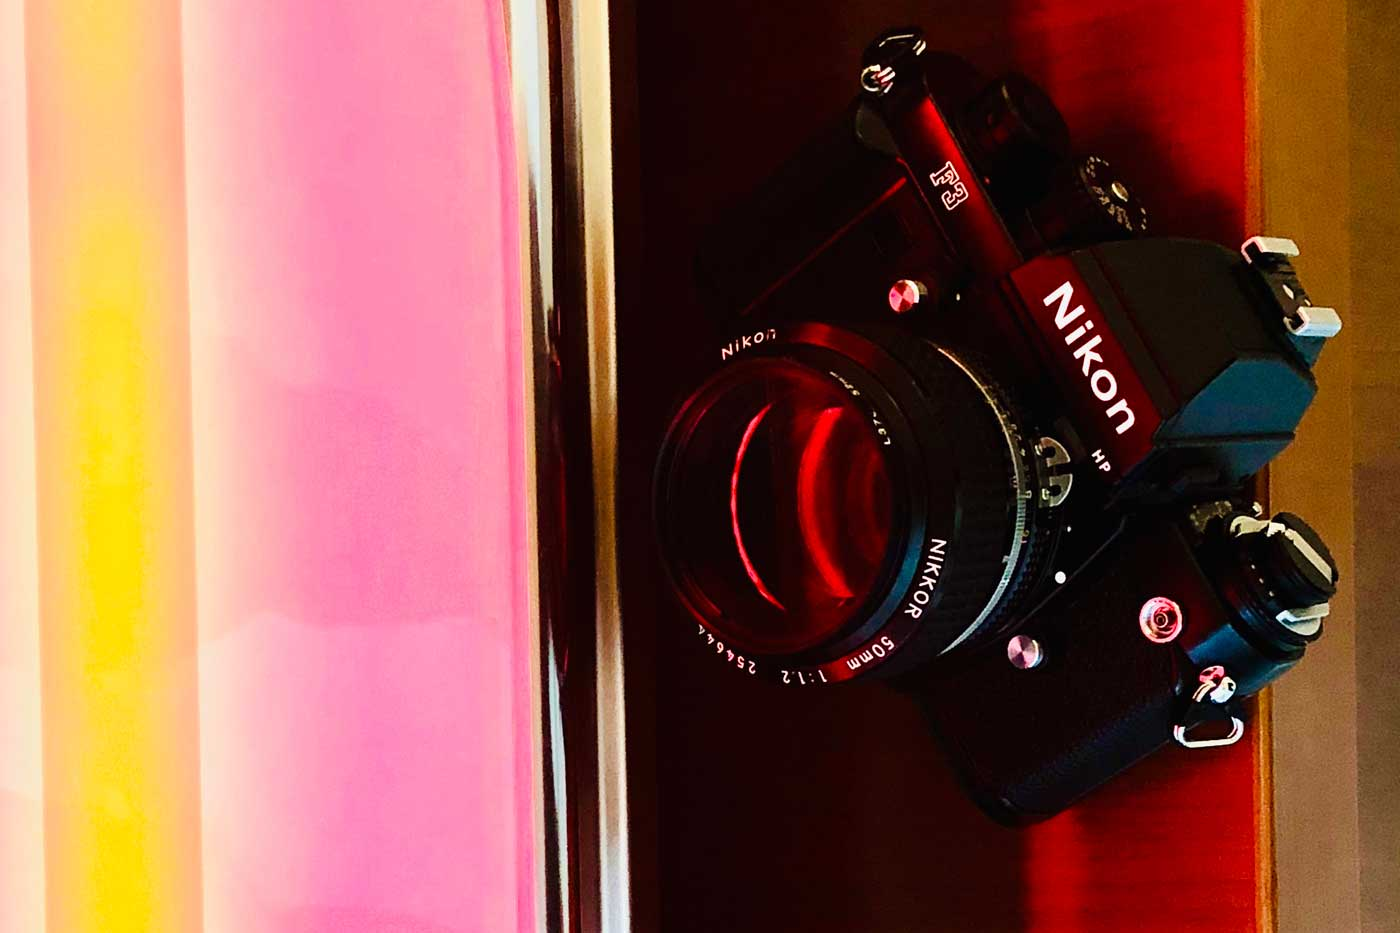 before-buying-film-camera-cameras-photography-slr-vs-rangefinder-types-tutorial-beginner-tips-guides-pros-cons-pick-selection-first-shutter-speed-aperture-sound-mirror-coupling-good-bad-compare-comparison